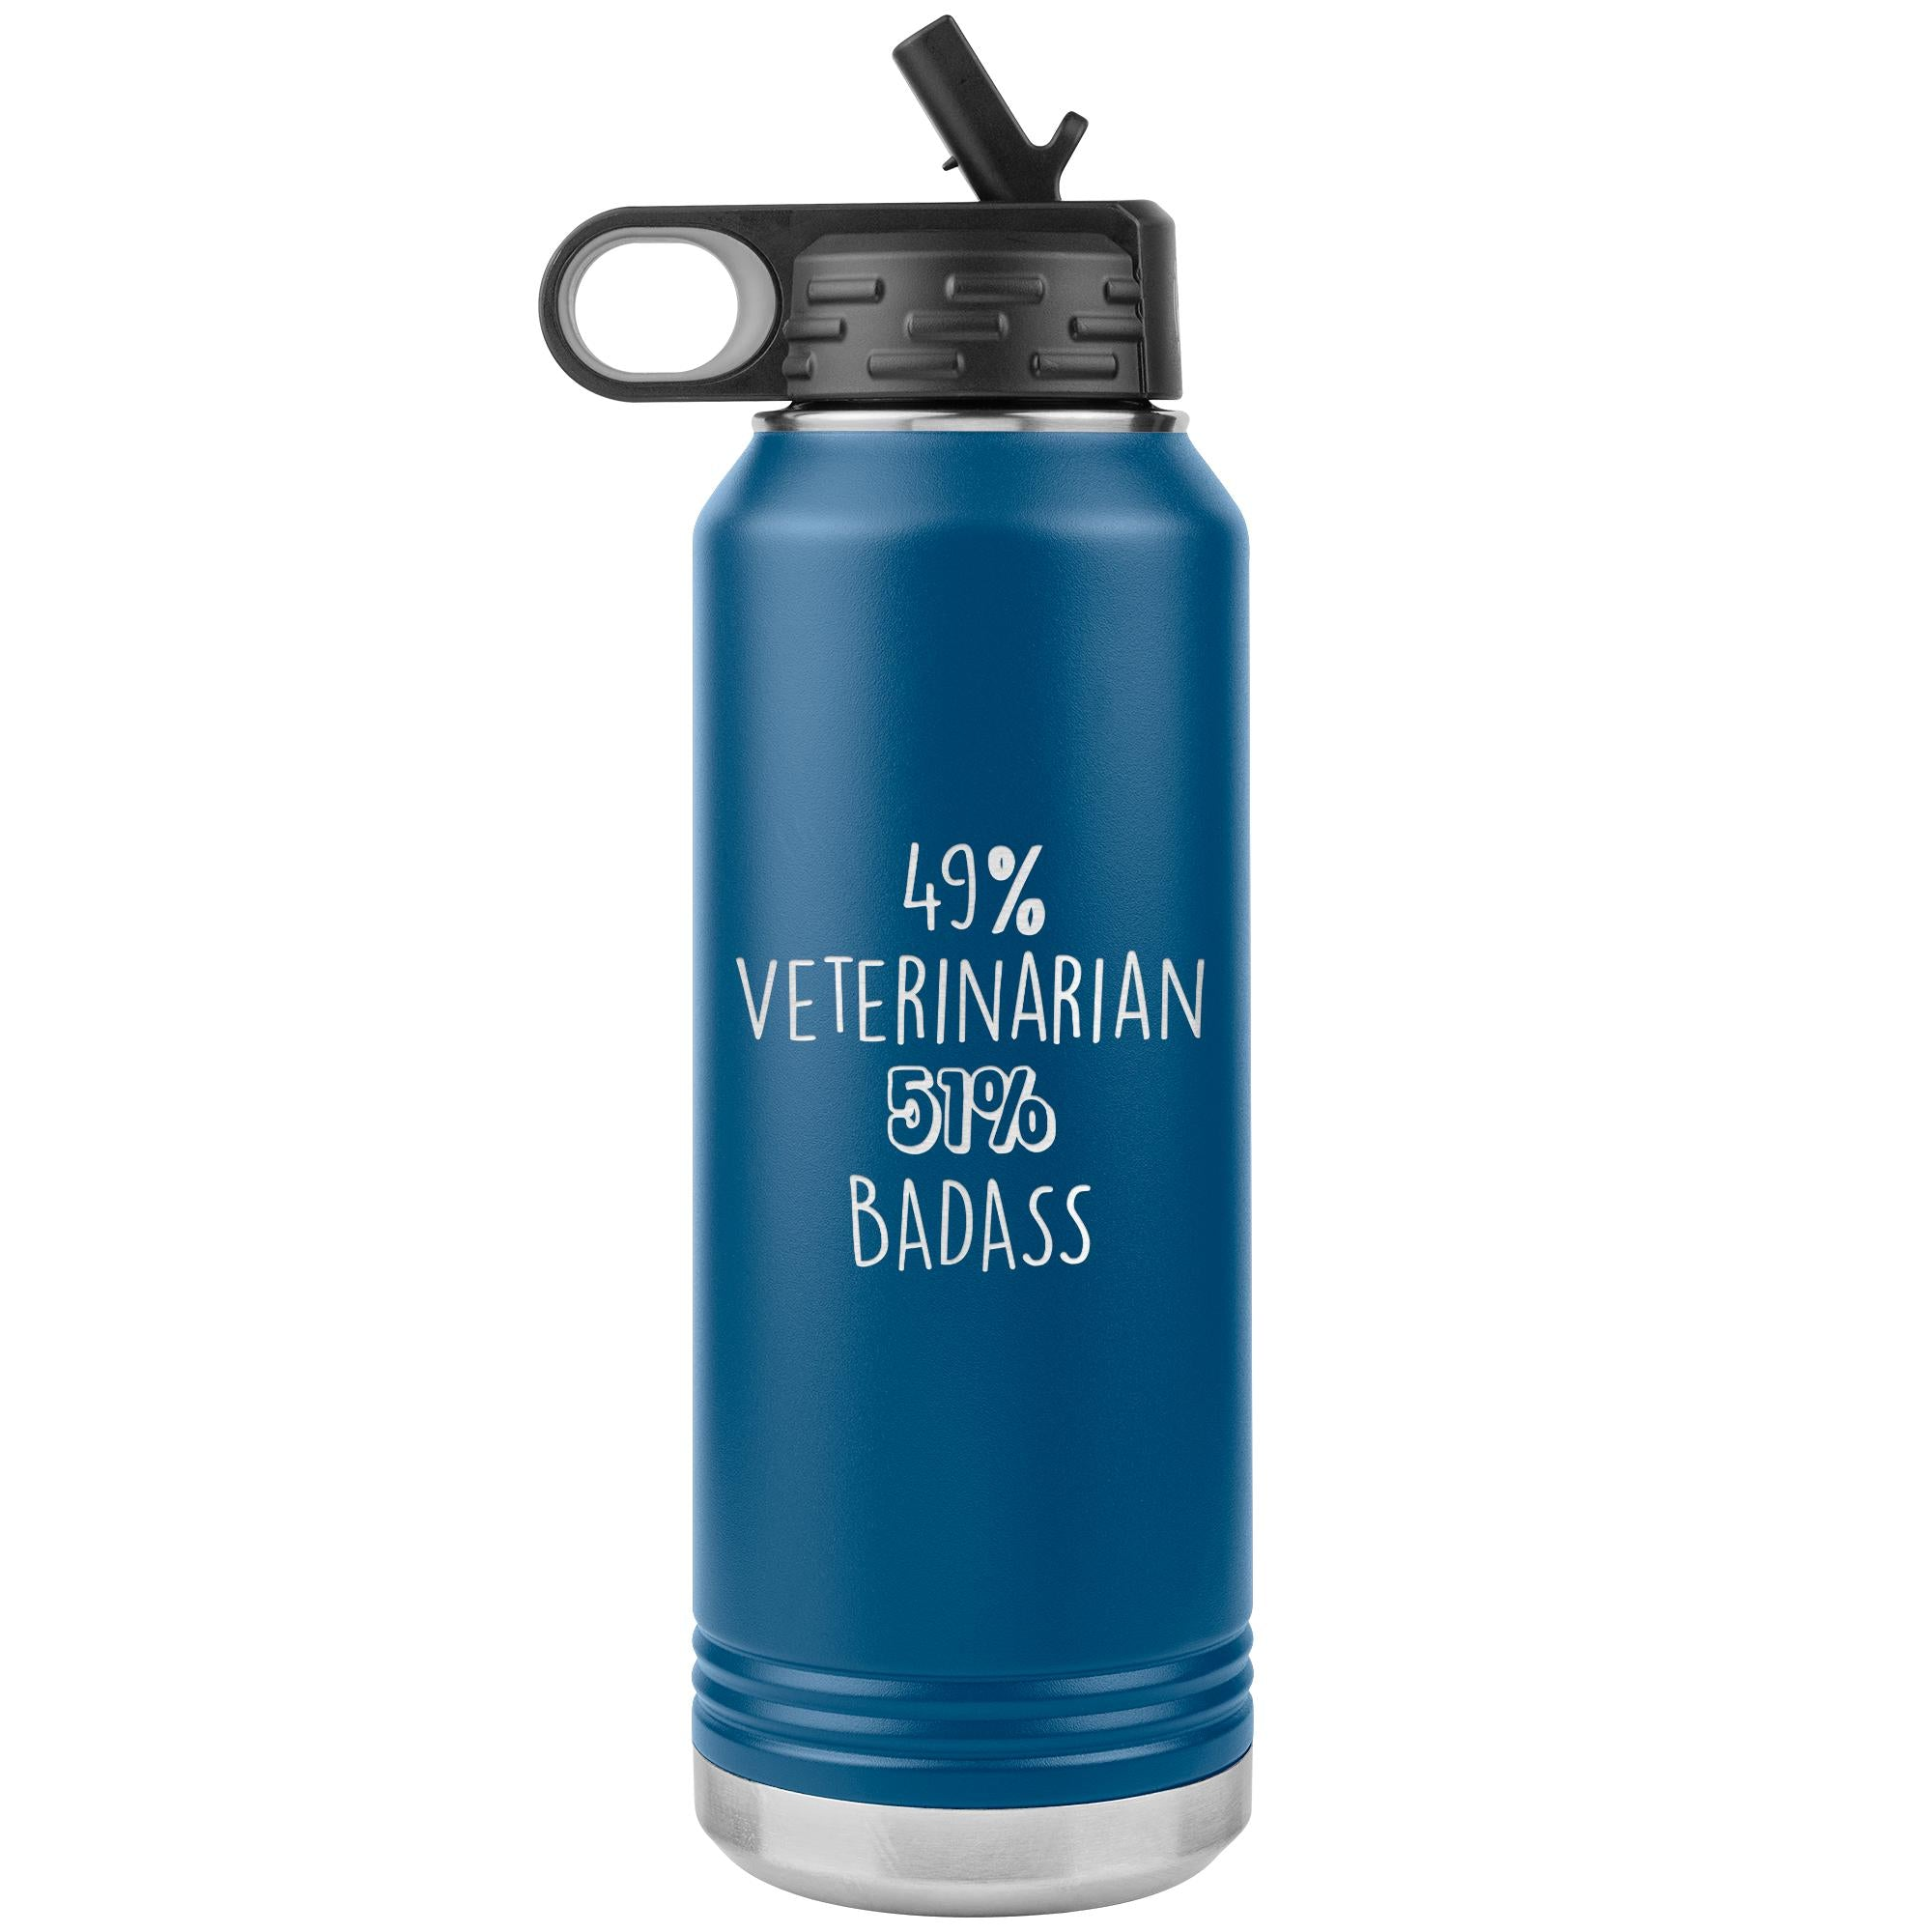 49% Veterinarian 51% Badass Water Bottle Tumbler 32 oz-Tumblers-I love Veterinary